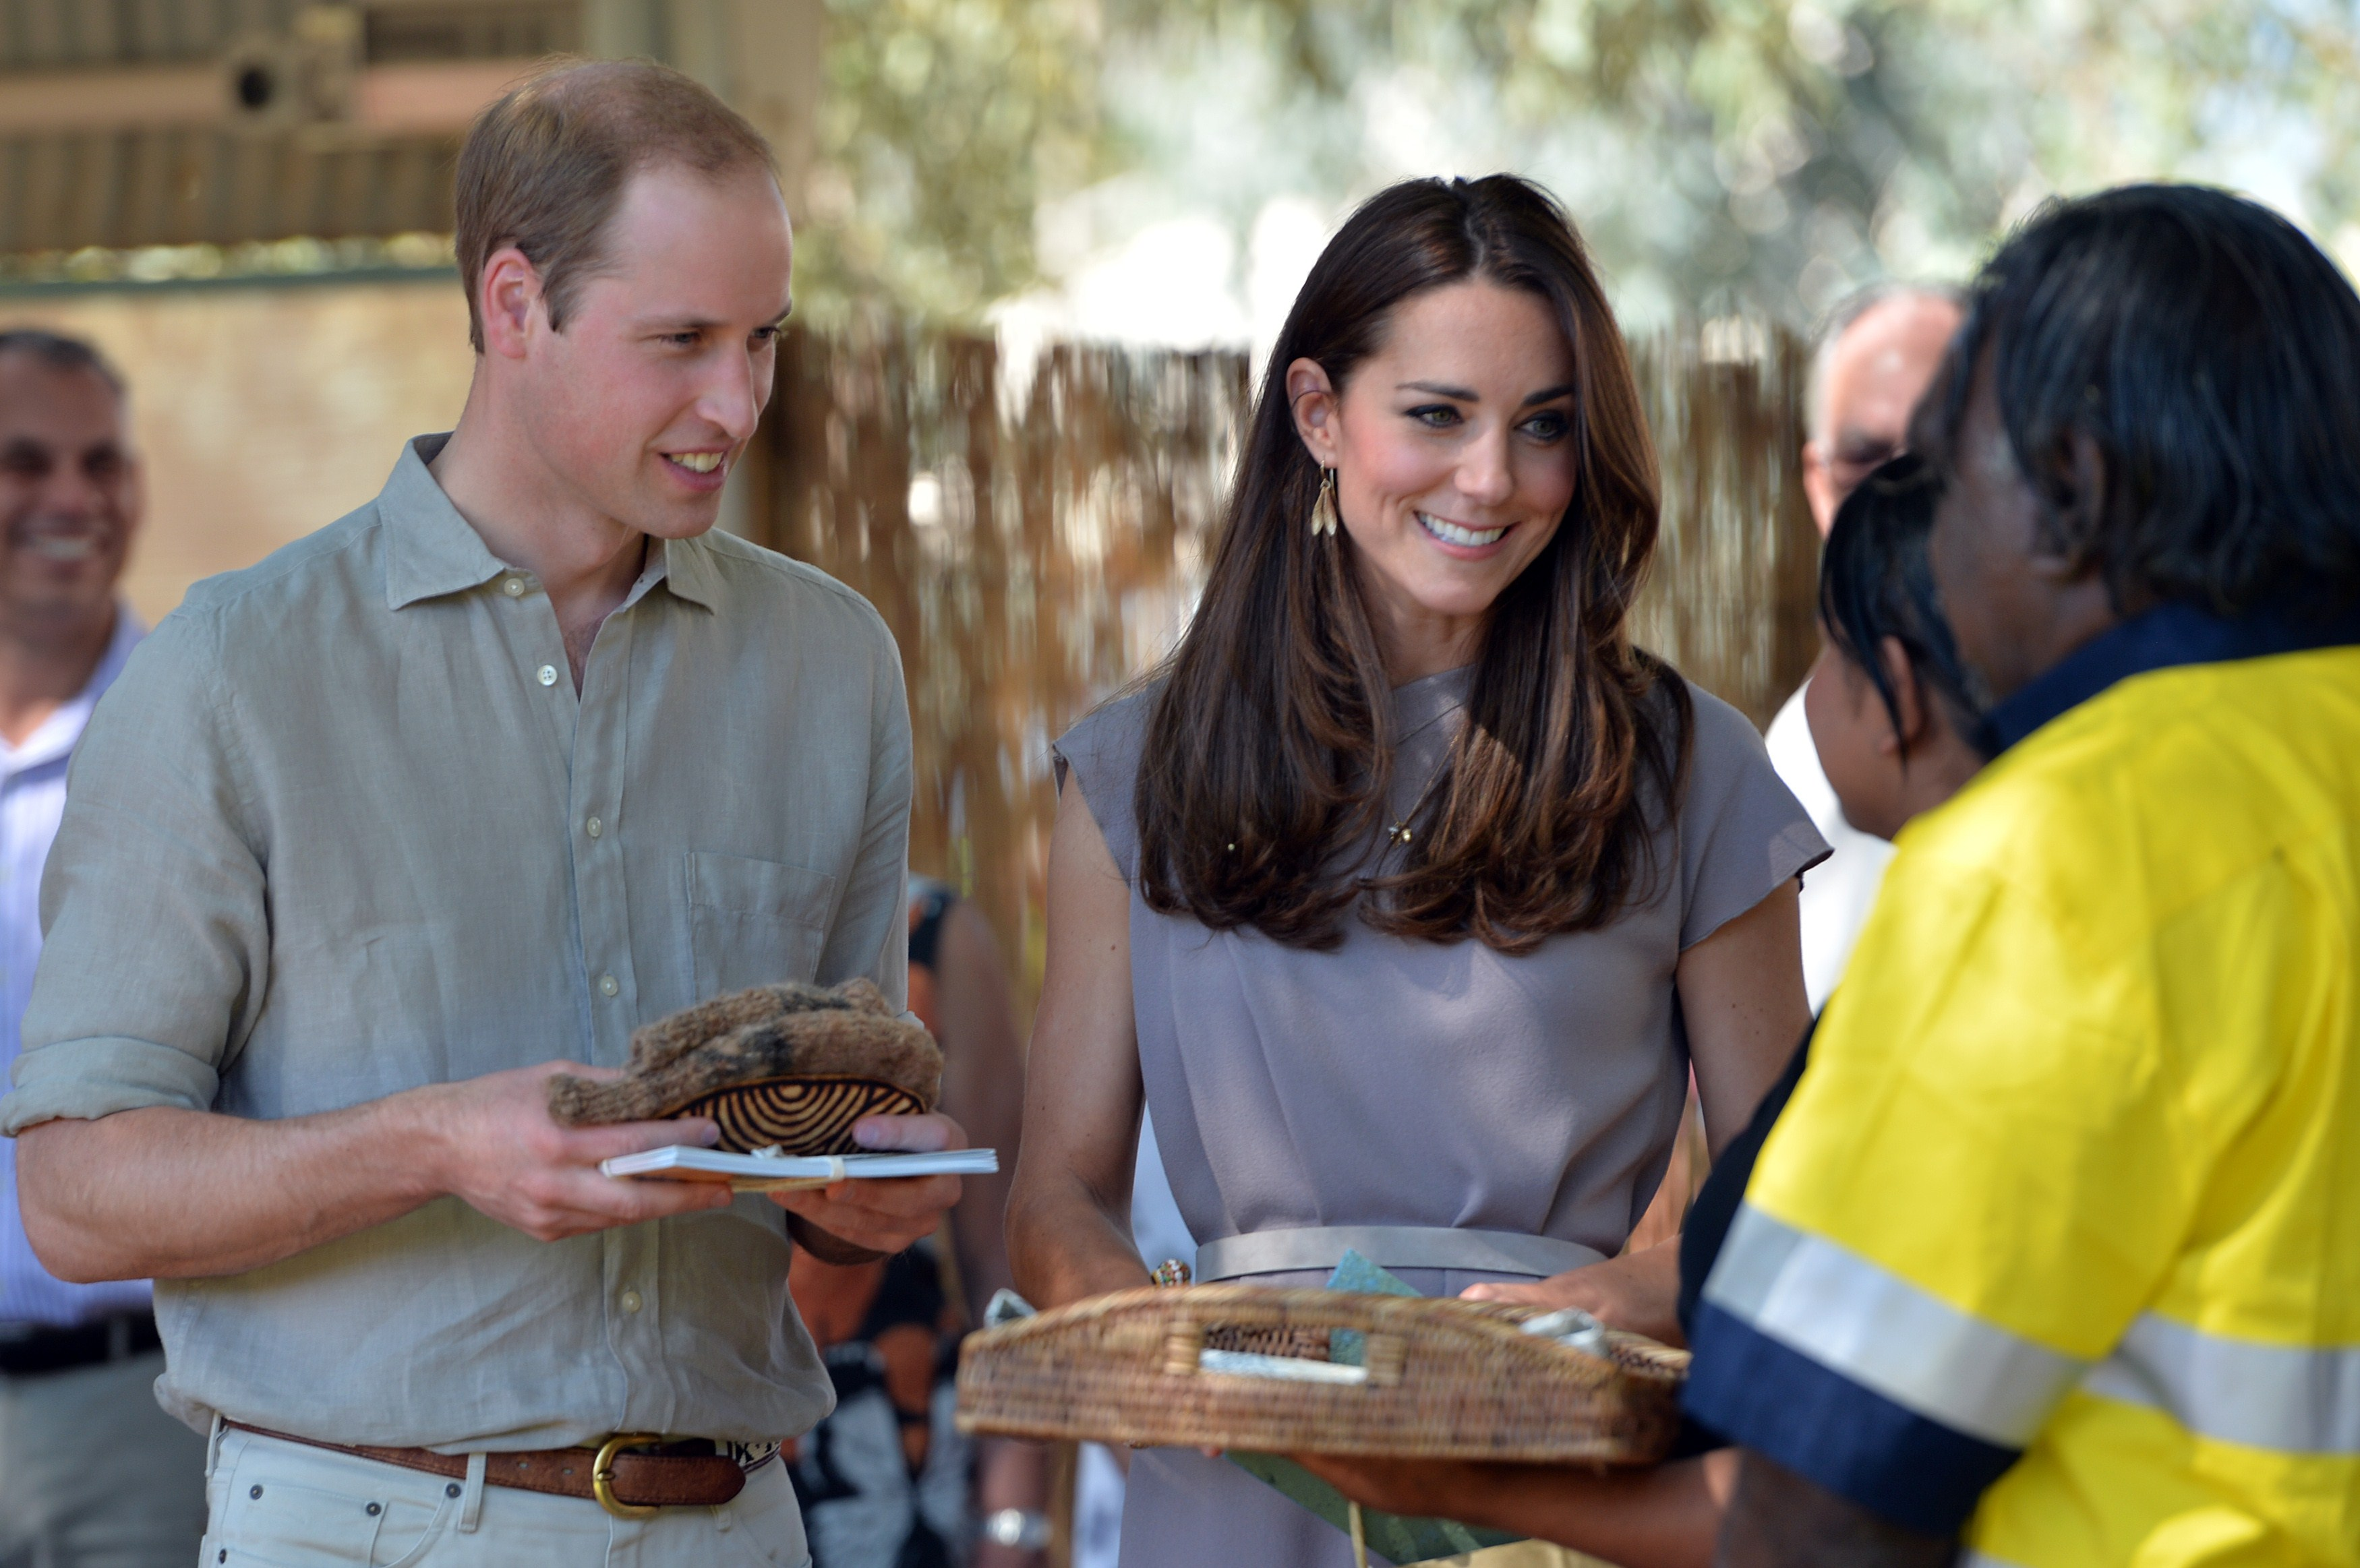 Prince William And Kate Middleton Have These Wild College Anecdotes To Tell